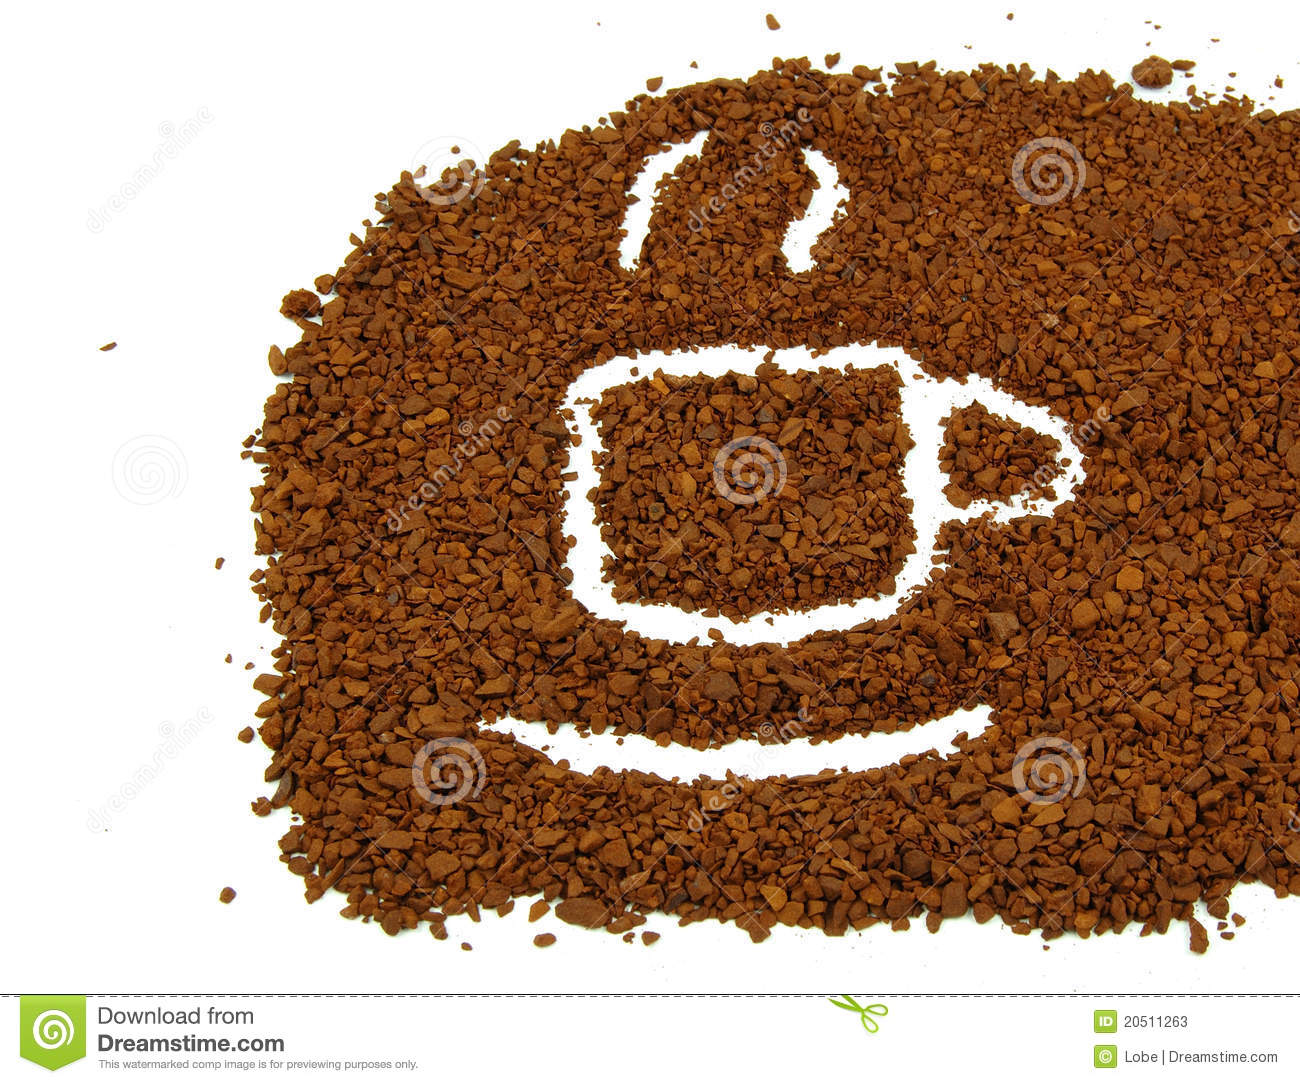 Coffee Grounds On Spoon Stock Photos Image 20511263 #7qtBeK.